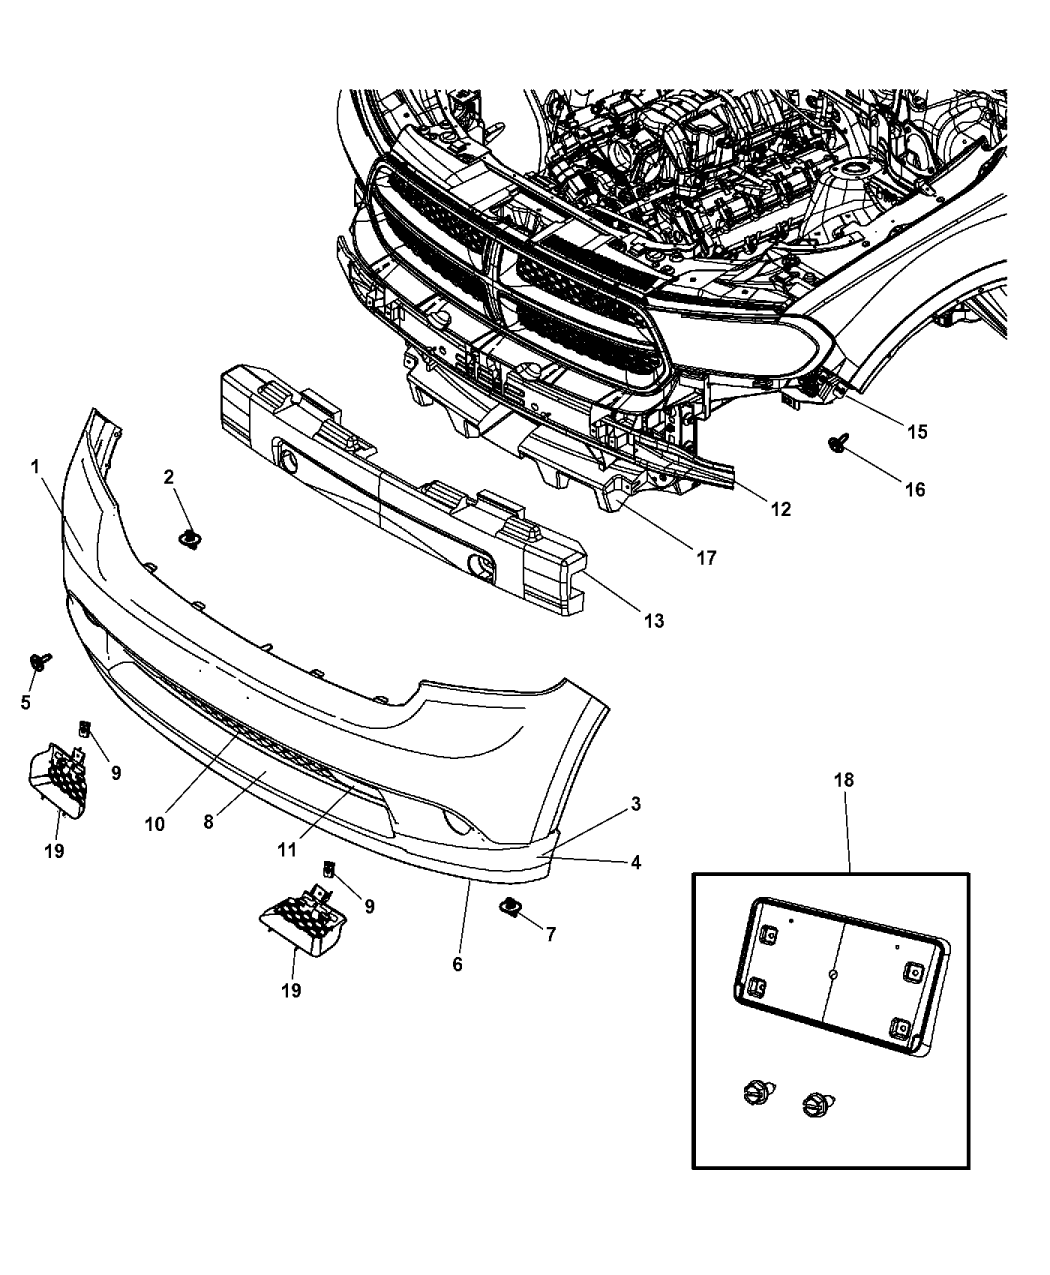 dodge durango bumper parts diagram  u2022 wiring diagram for free